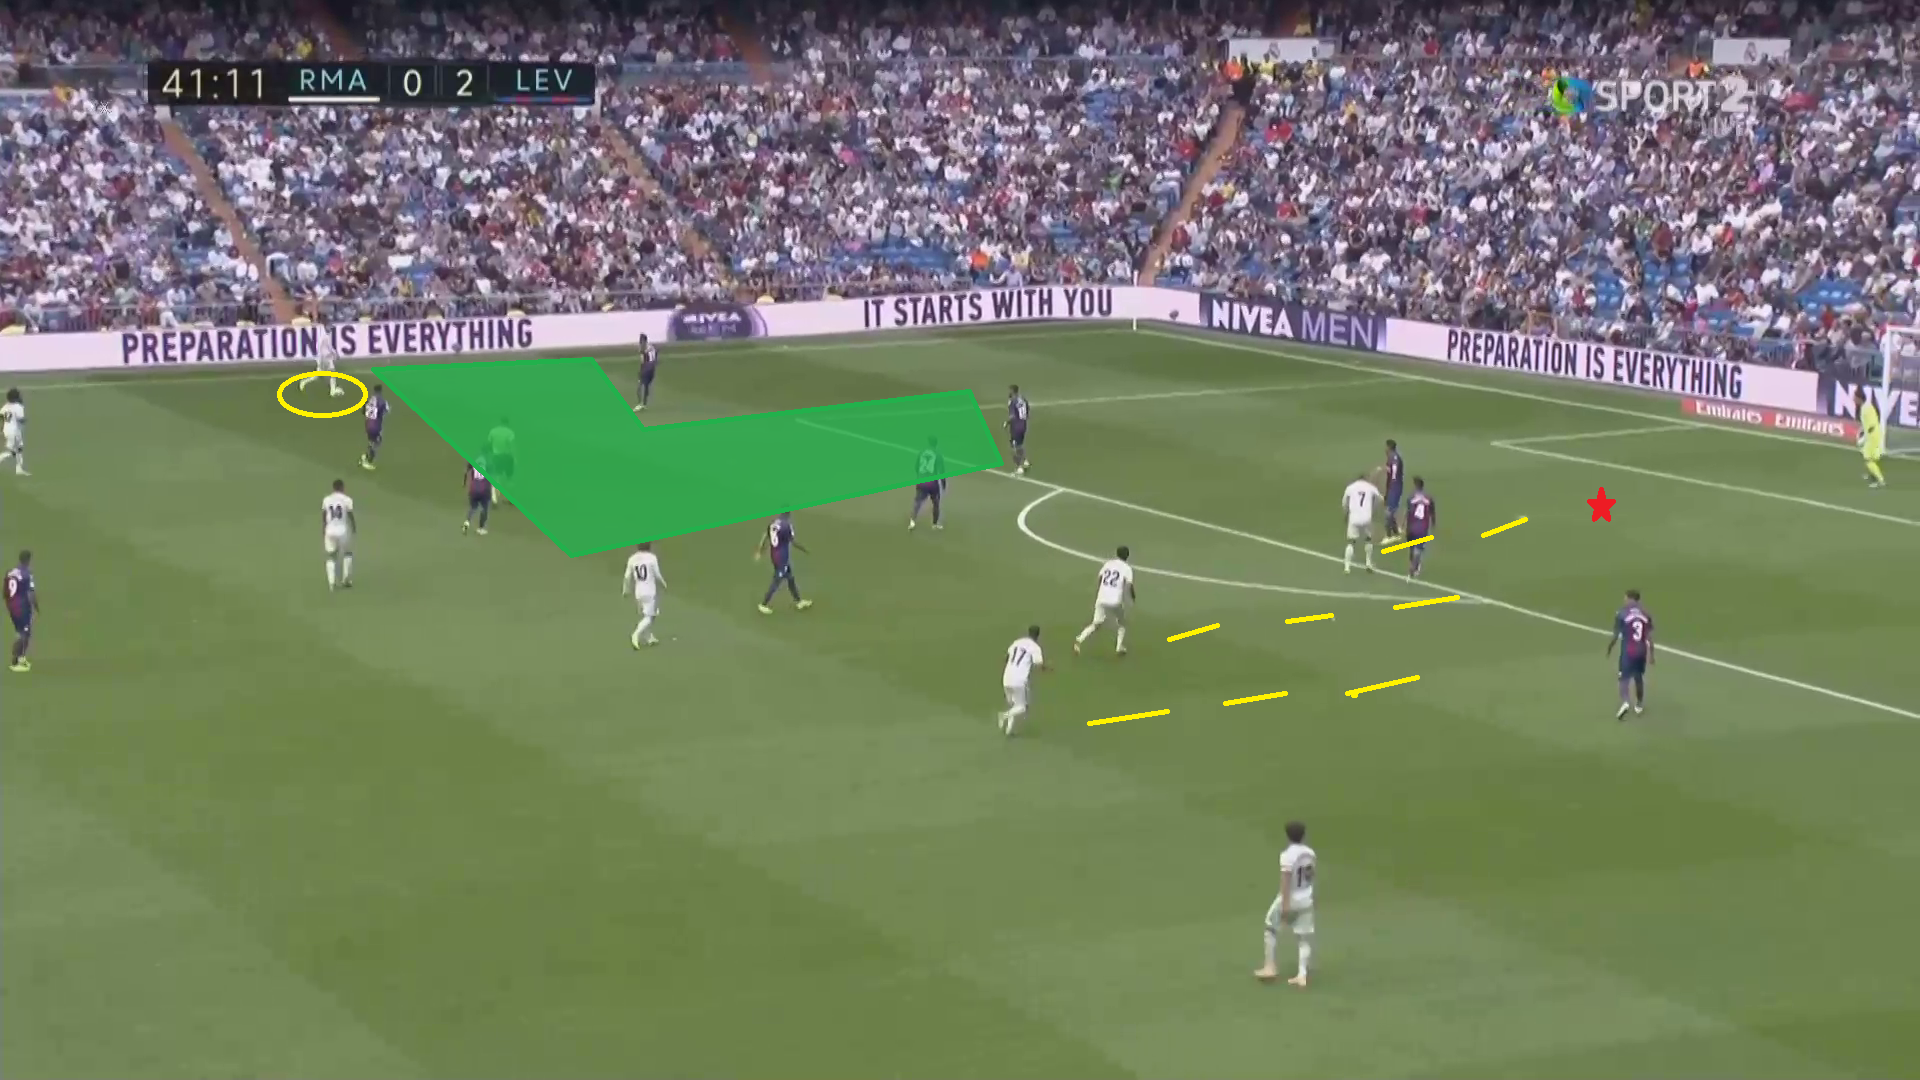 Real-Madrid Levante La Liga Tactical Analysis Statistics